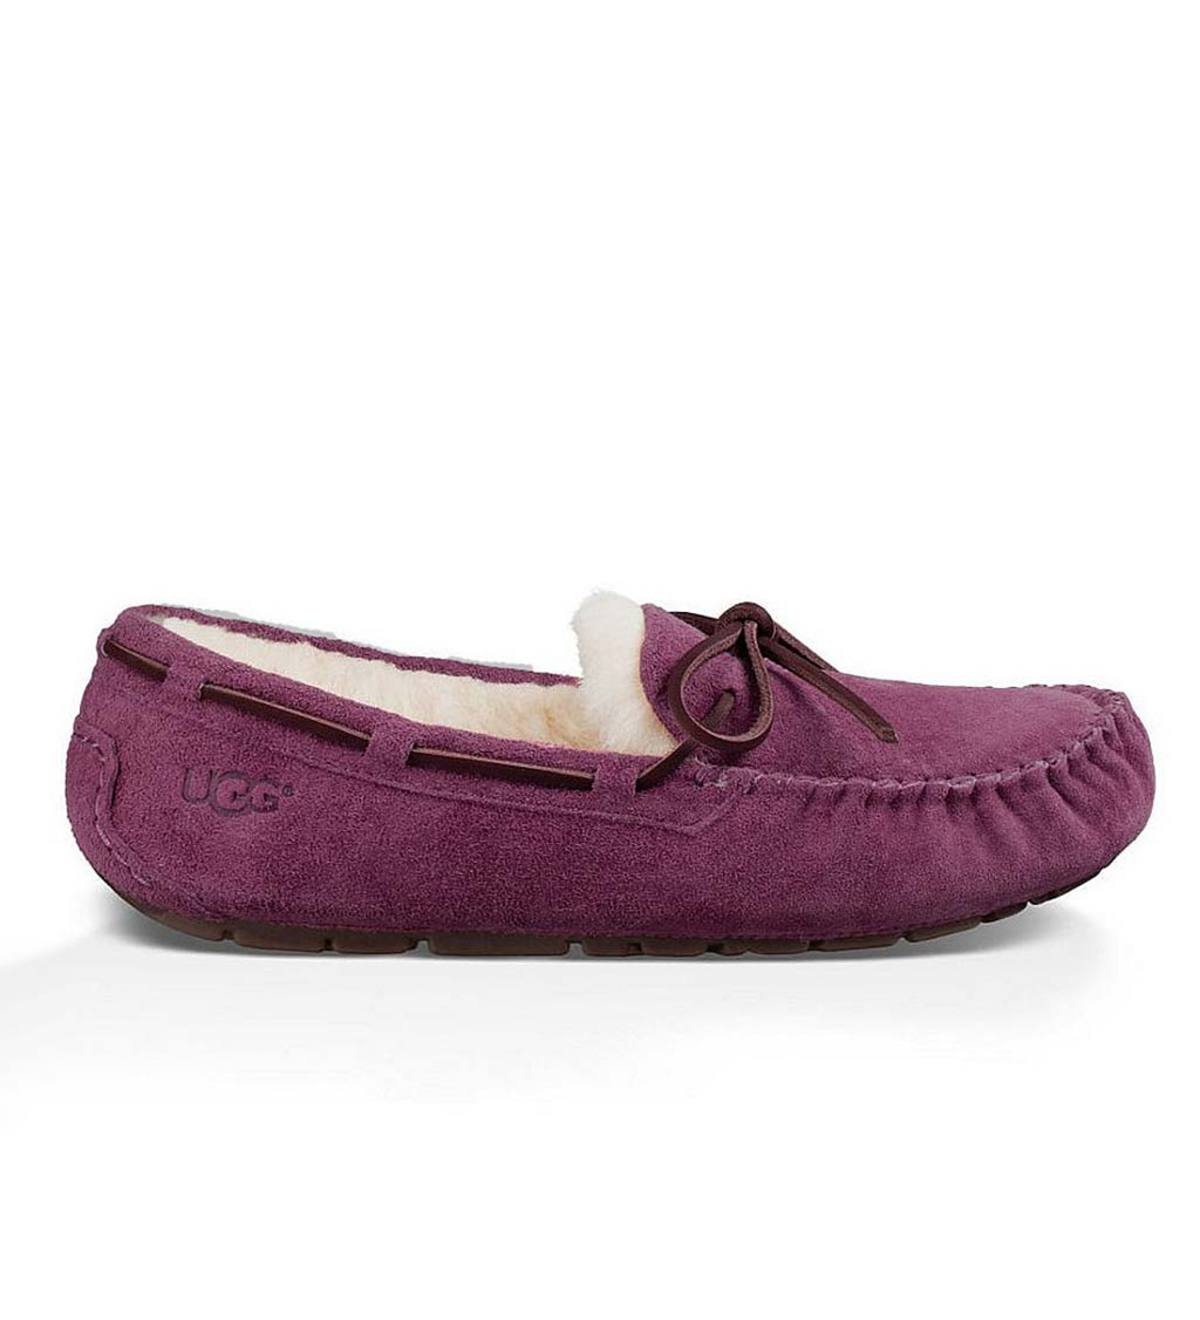 UGG Australia Womens Dakota Moccasin Slippers - Port - Size 5